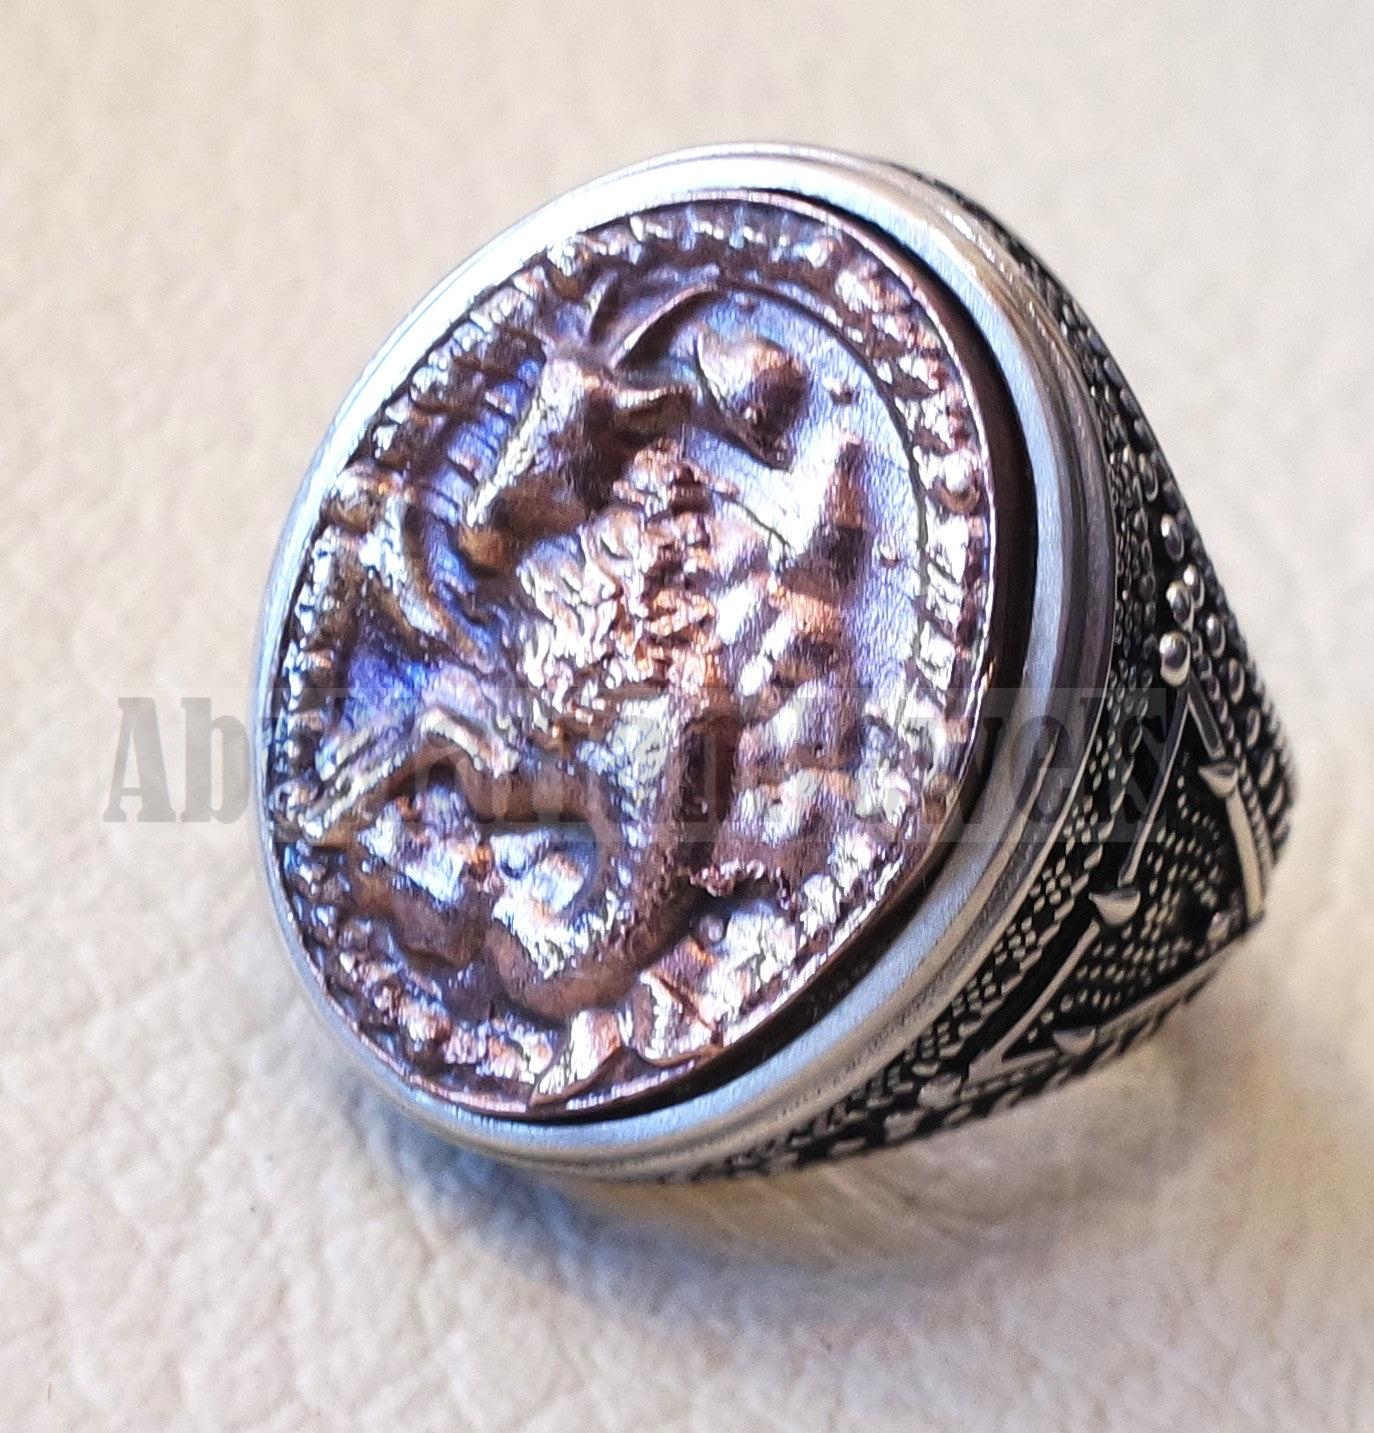 Horoscopes zodiac sign Capricorn  sterling silver 925 and antique bronze huge men ring all sizes men jewelry gift that bring luck fast shipping